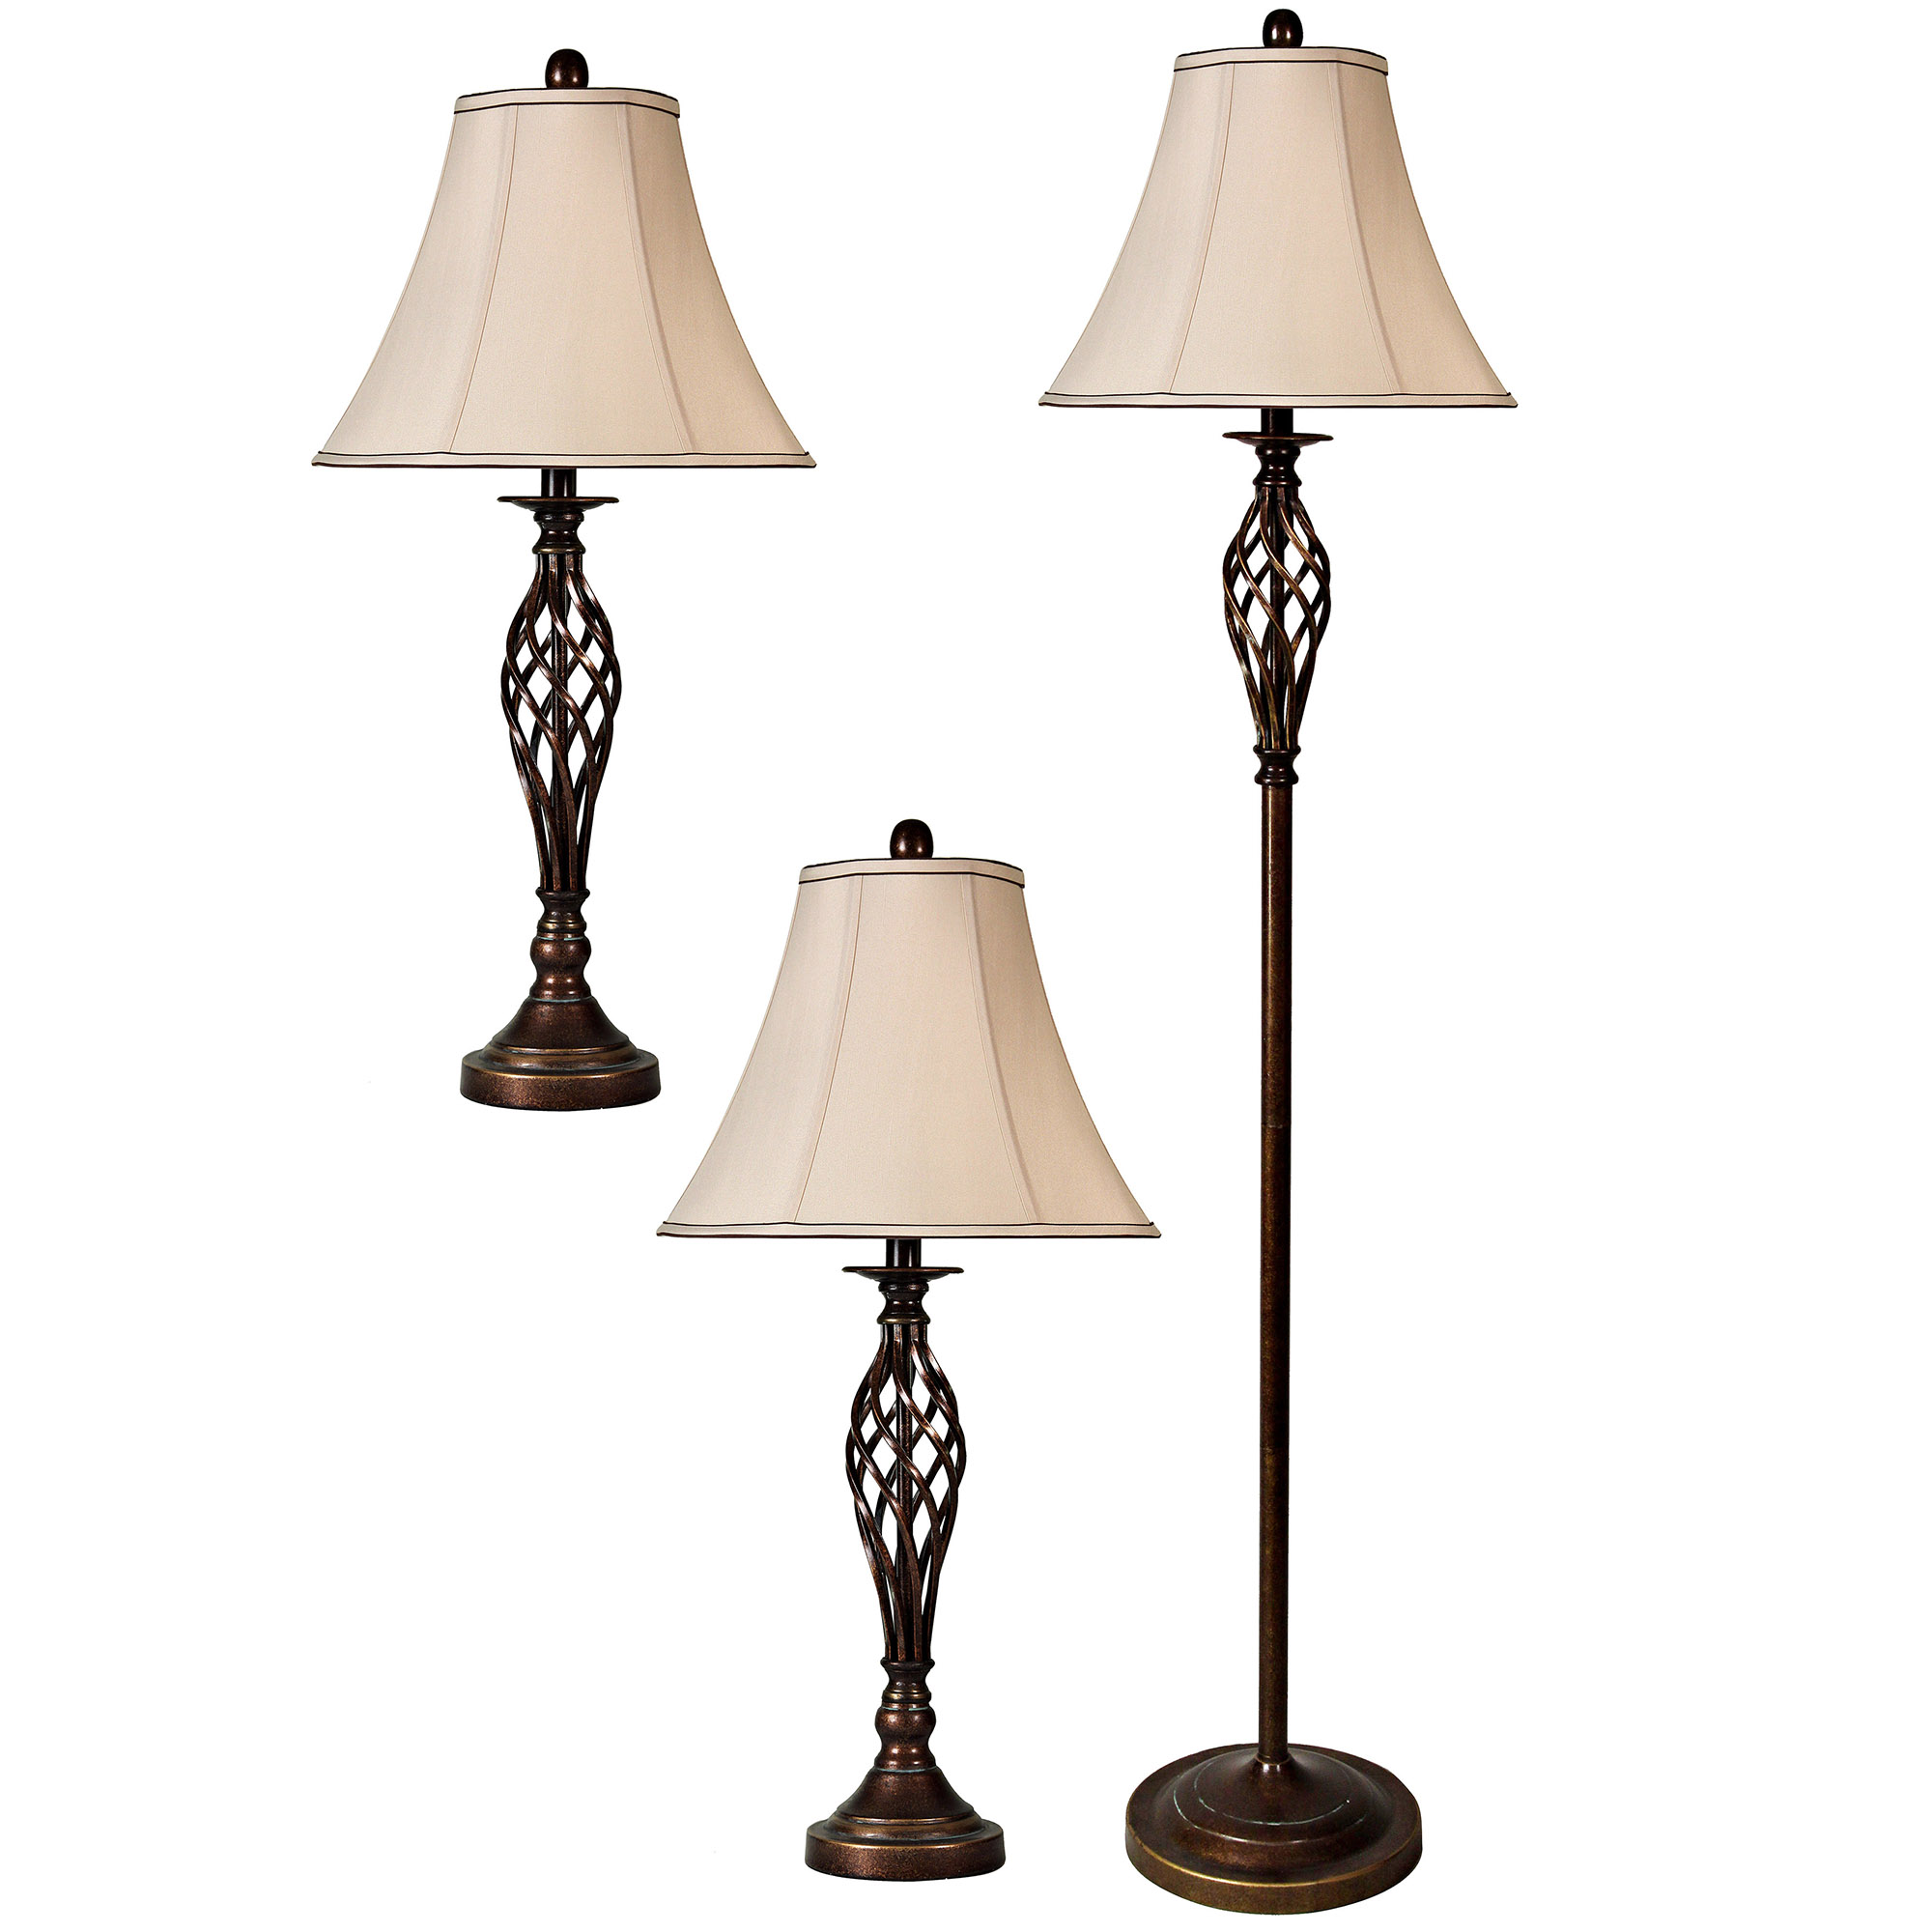 StyleCraft Barclay Brass 3 Piece Living Room Accent Table and Floor Lamp Set